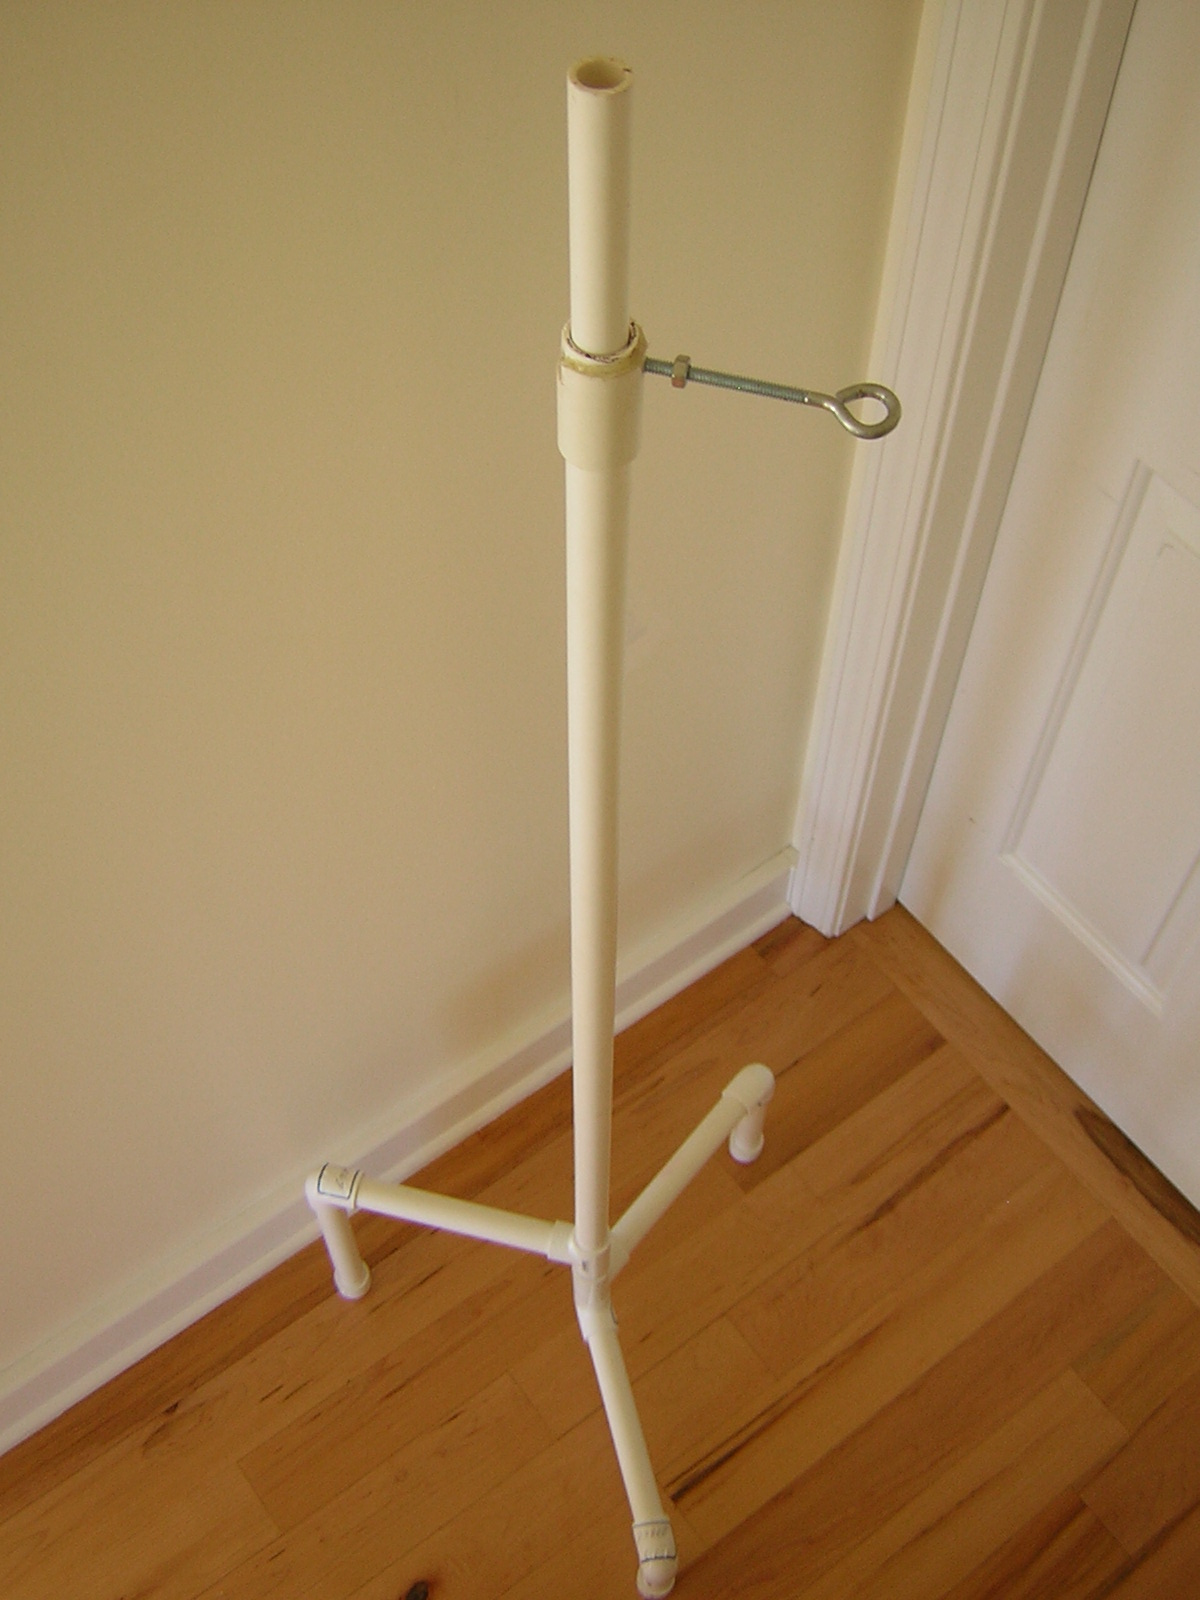 The $10 PVC C-stand